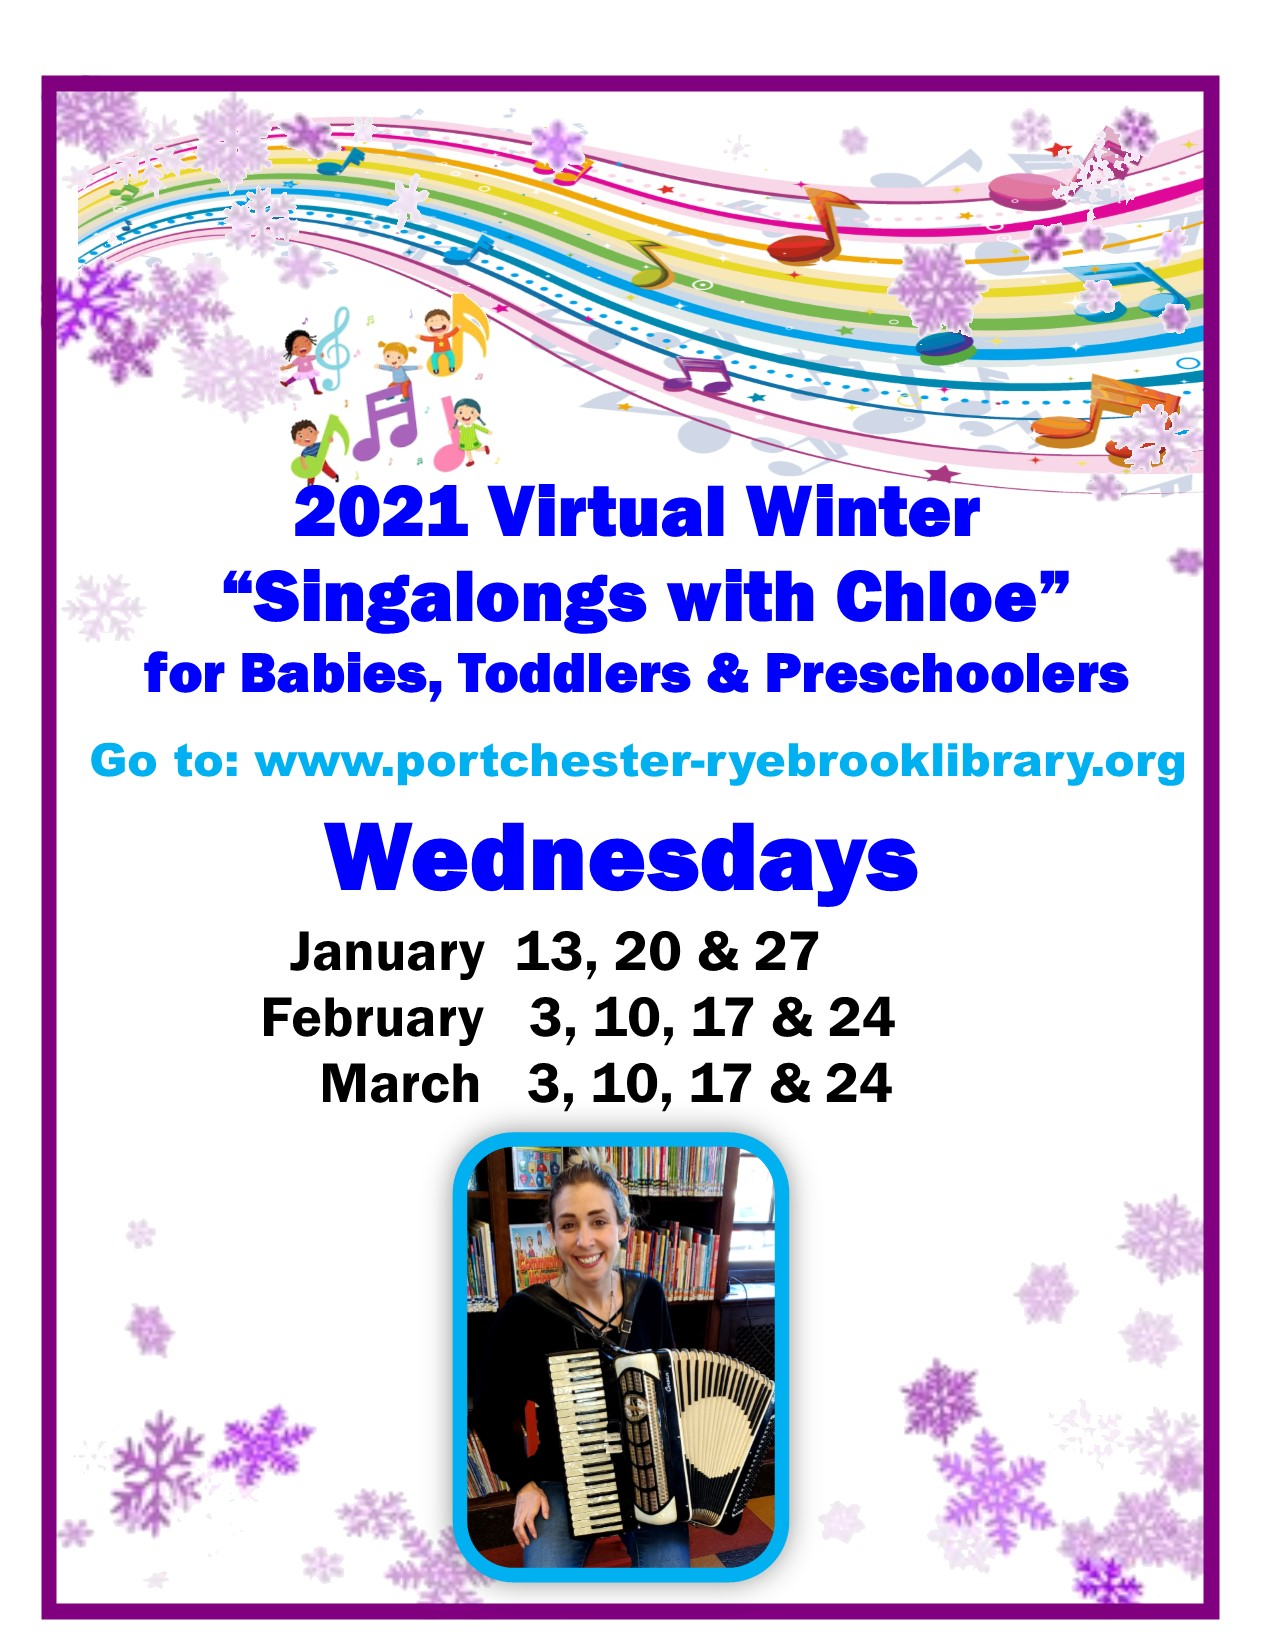 ONLINE Virtual Winter Singalongs with Chloe at Port Chester-Rye Brook Library